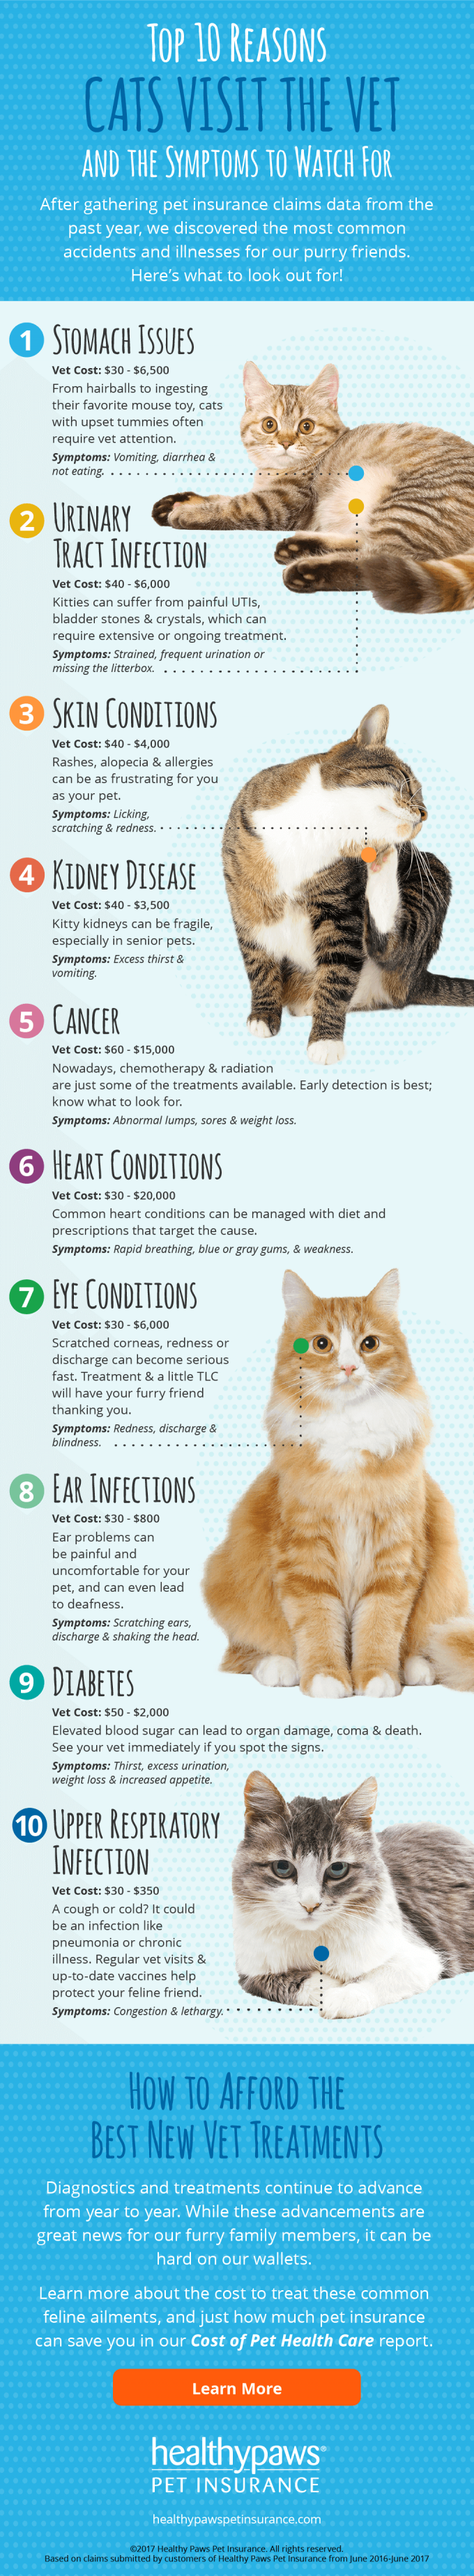 Top 10 Reasons Cats Visit The Vet Infographic Healthy Paws Pet Insurance Cat Fleas Treatment Homemade Cat Food Flea Remedies